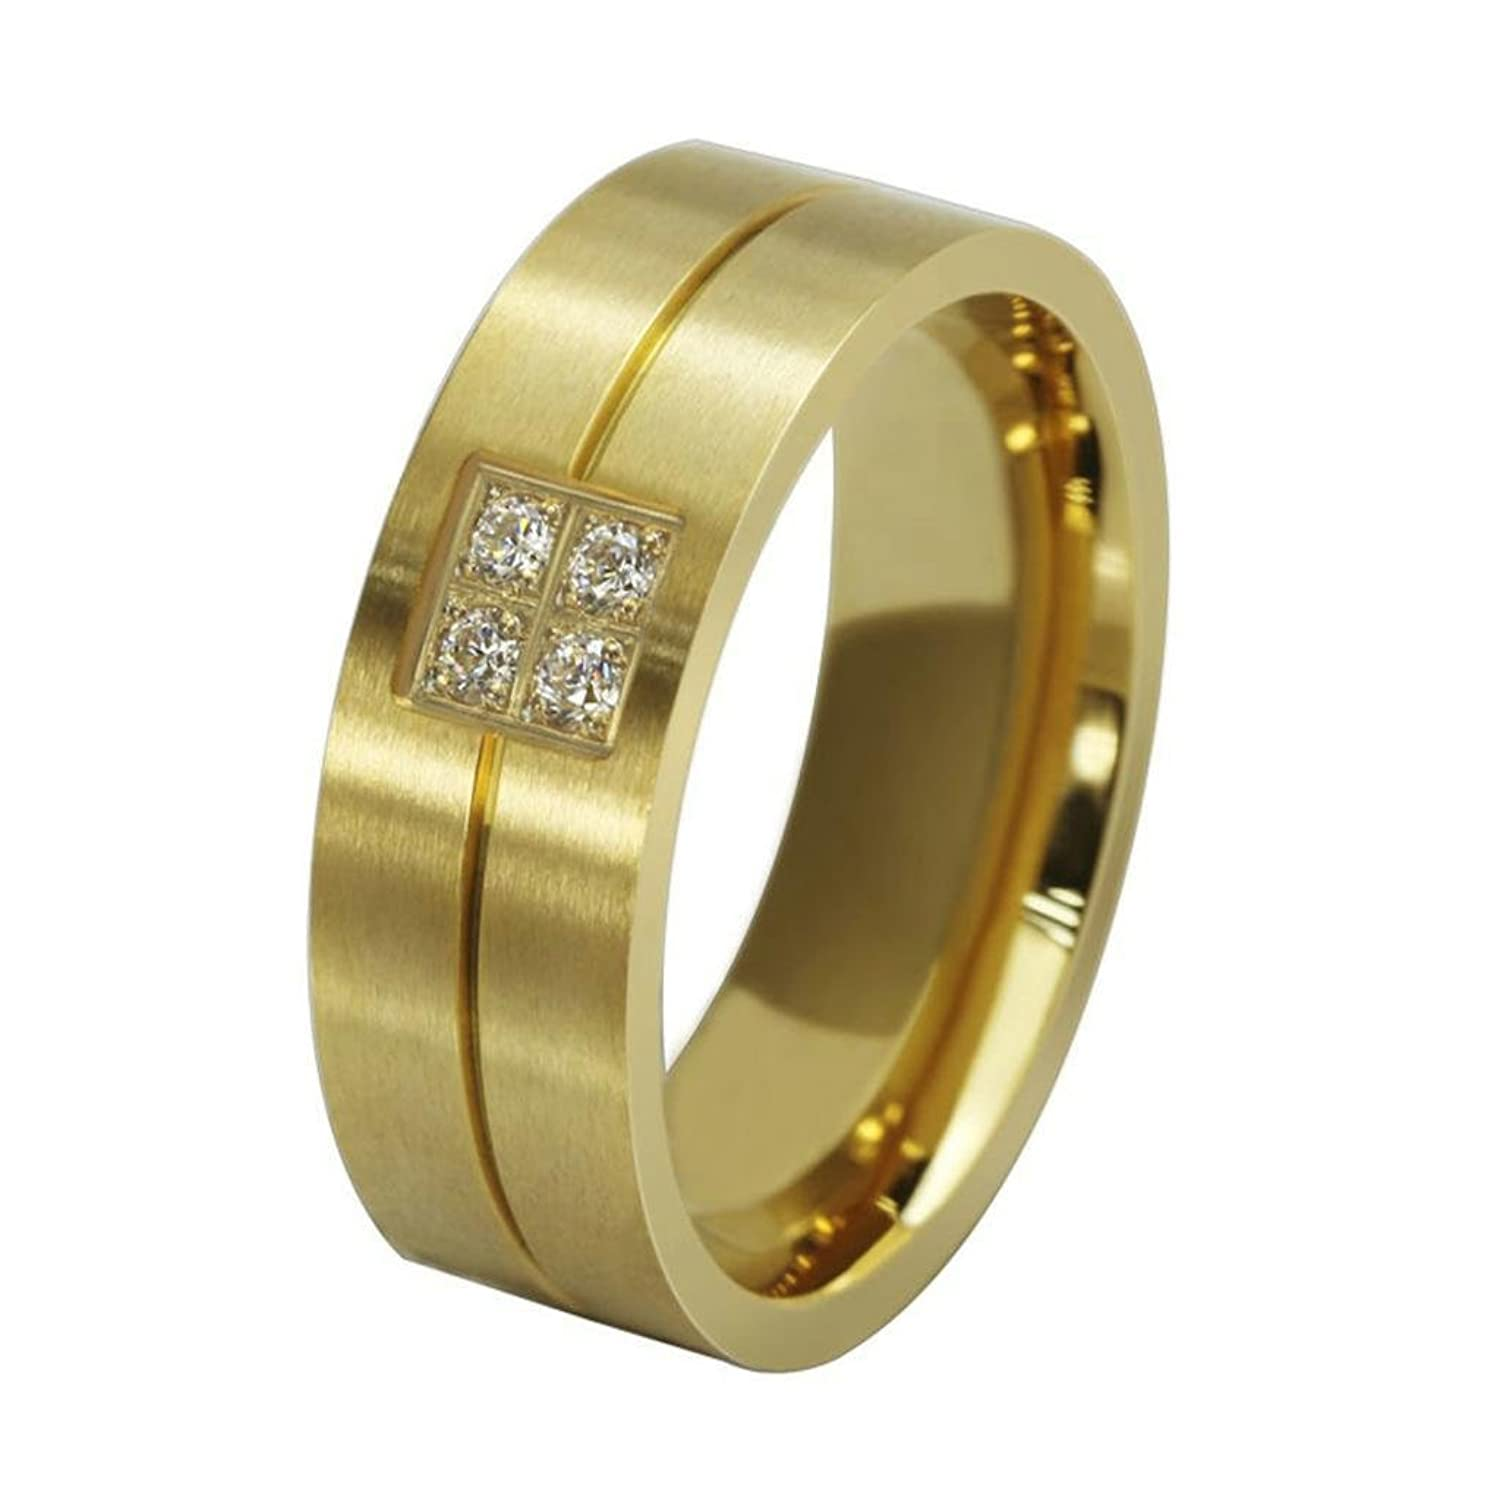 AMDXD Jewelry 18K Gold Plated Titanium Steel Men's Fashion Rings CZ Frosting Golden